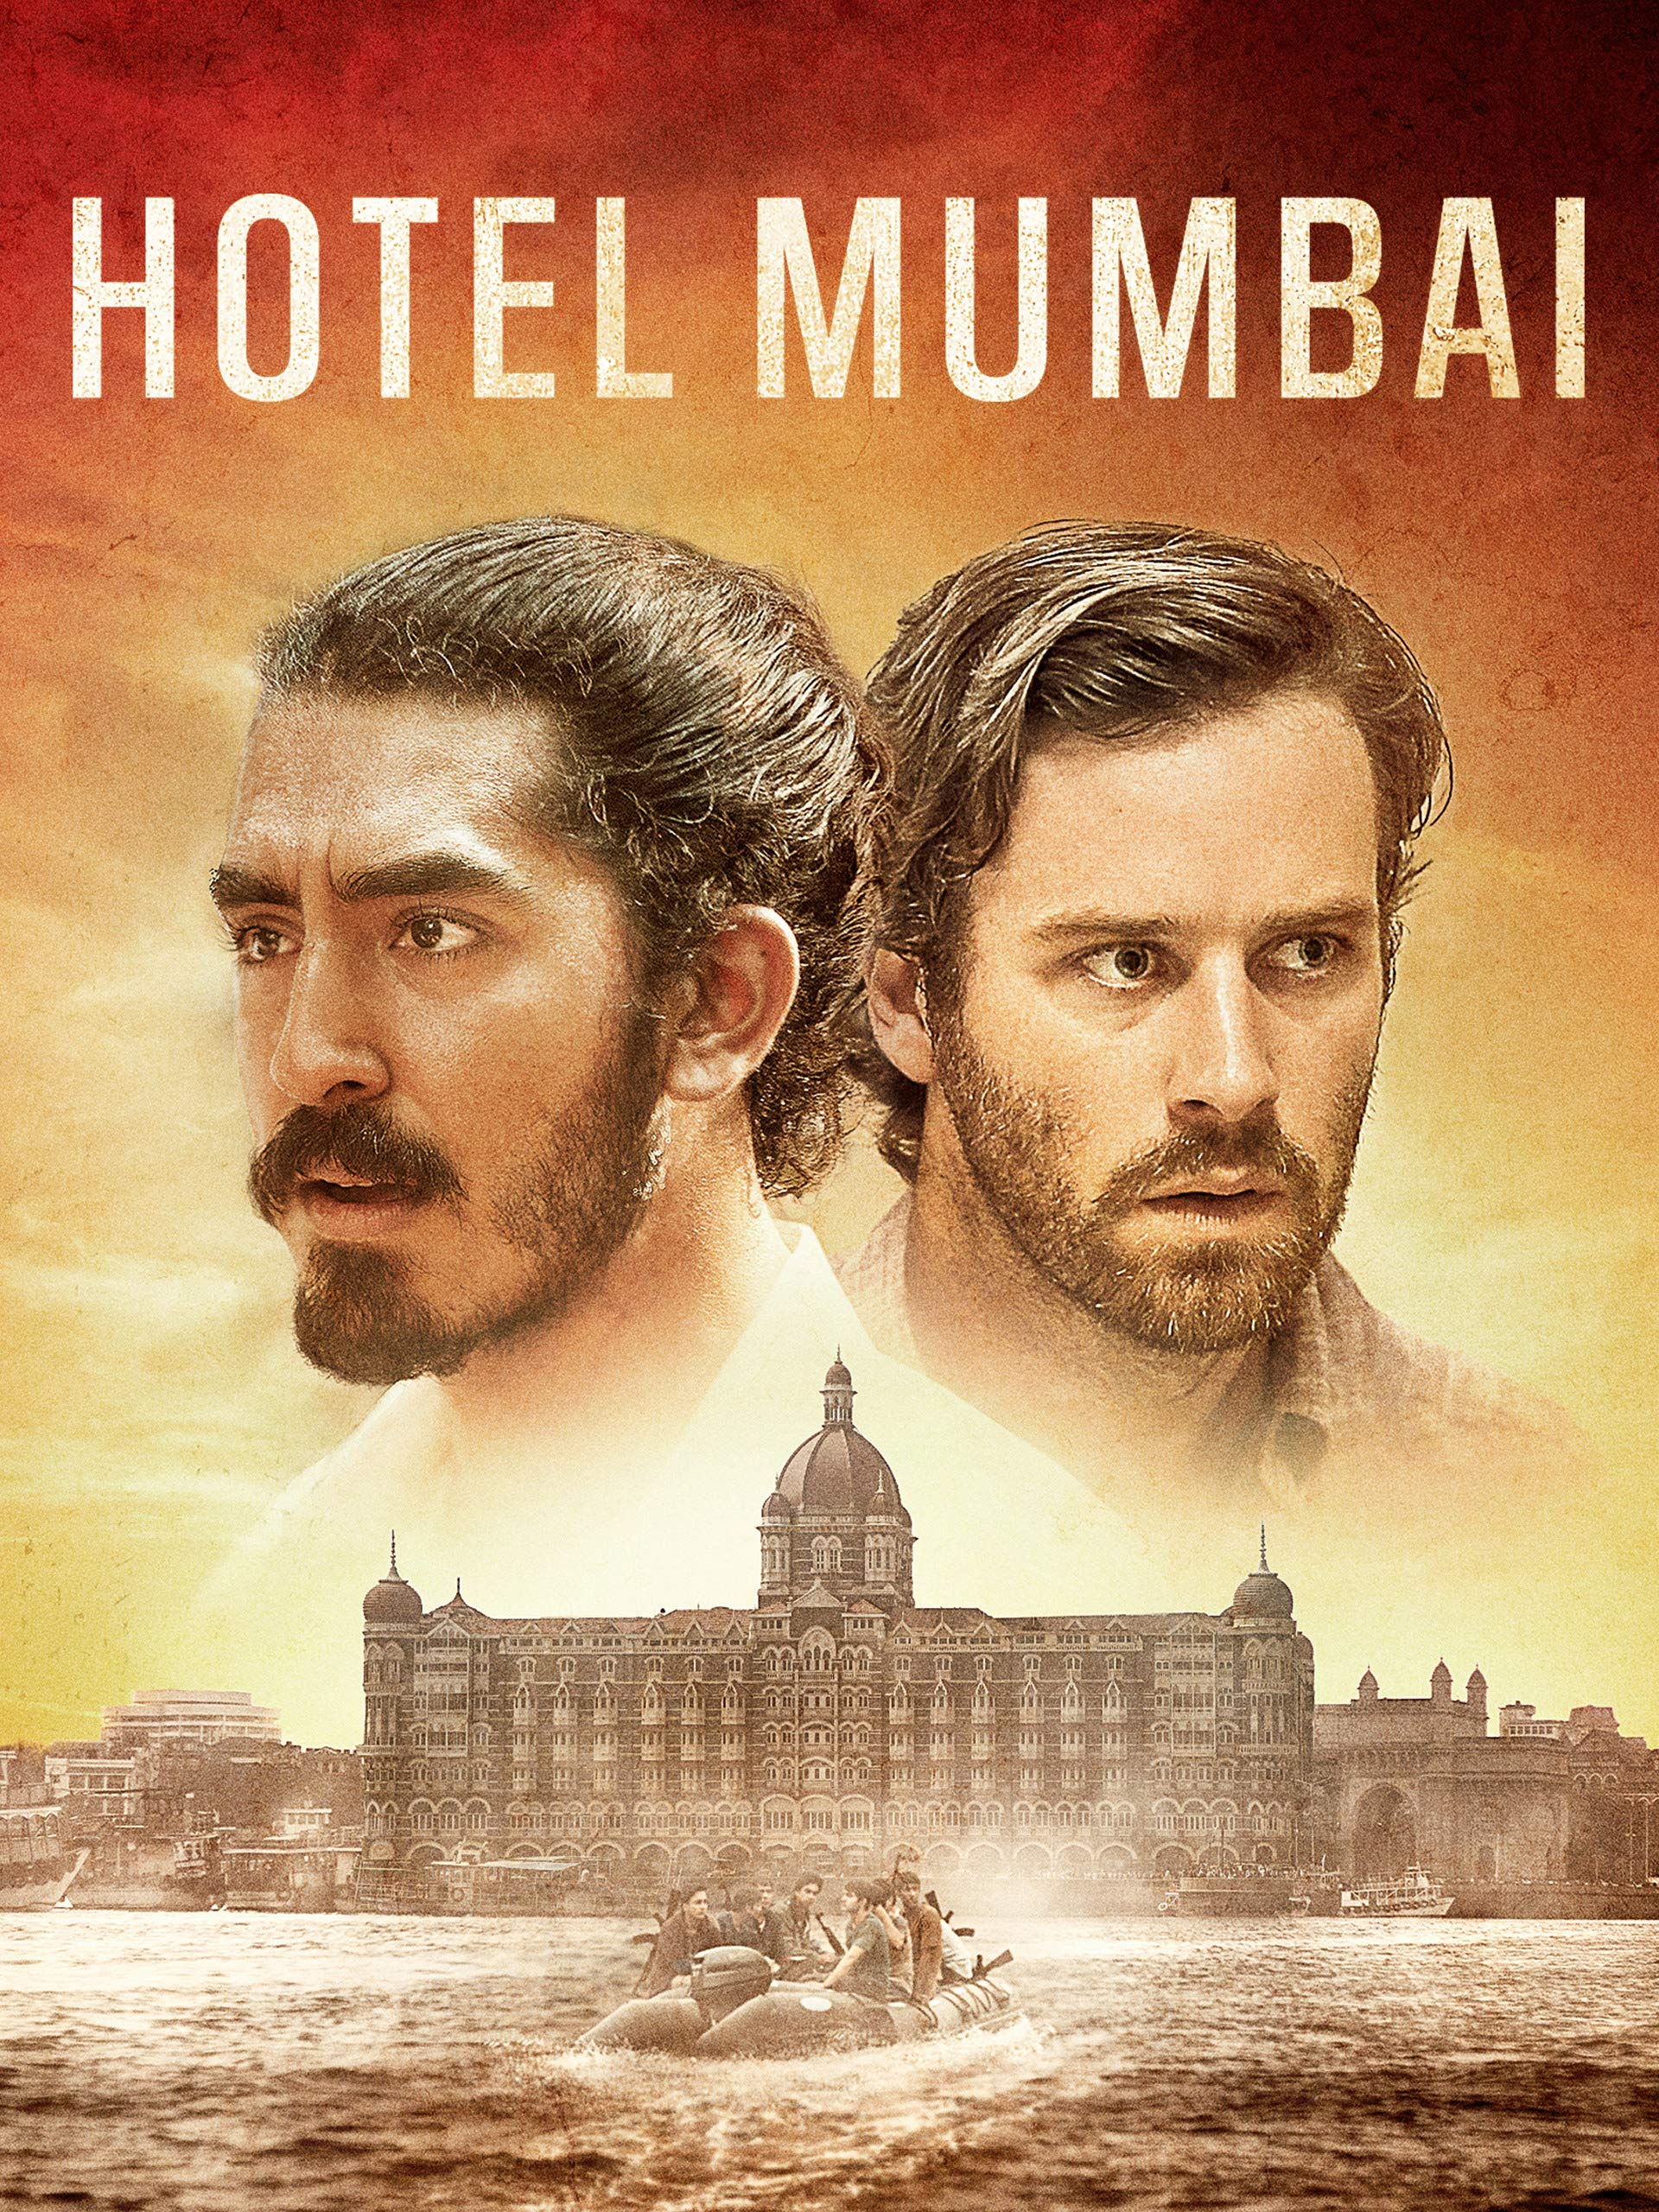 Hotel Mumbai Movie Box Office Collection DAY 8: फिल्म होटल मुंबई 7th Day Kamai, Worldwide Earning